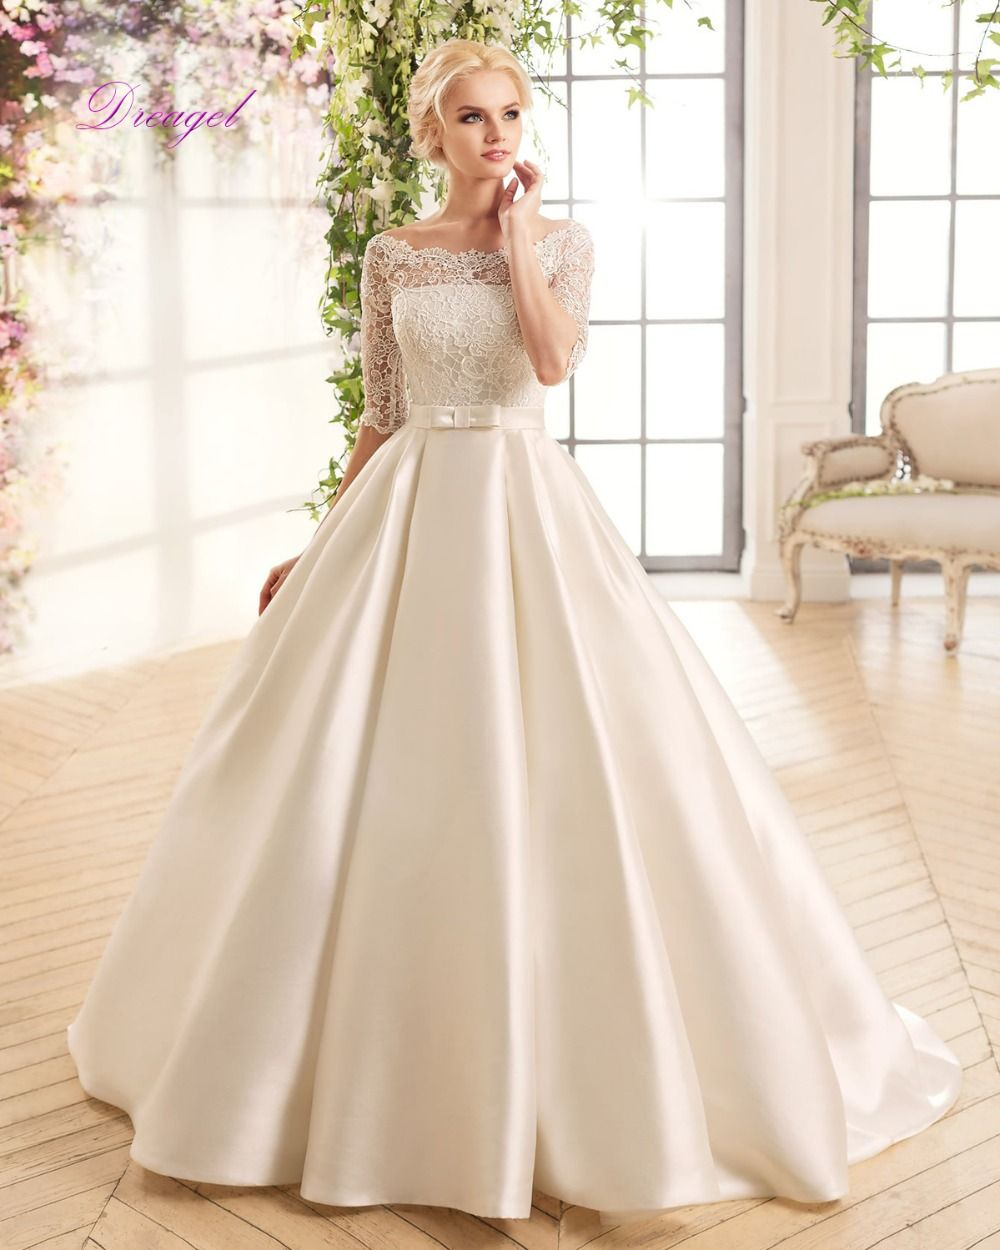 Satin And Lace Wedding Gowns: Dreagel Gorgeous Boat Neck Half Sleeves Wedding Dress 2017